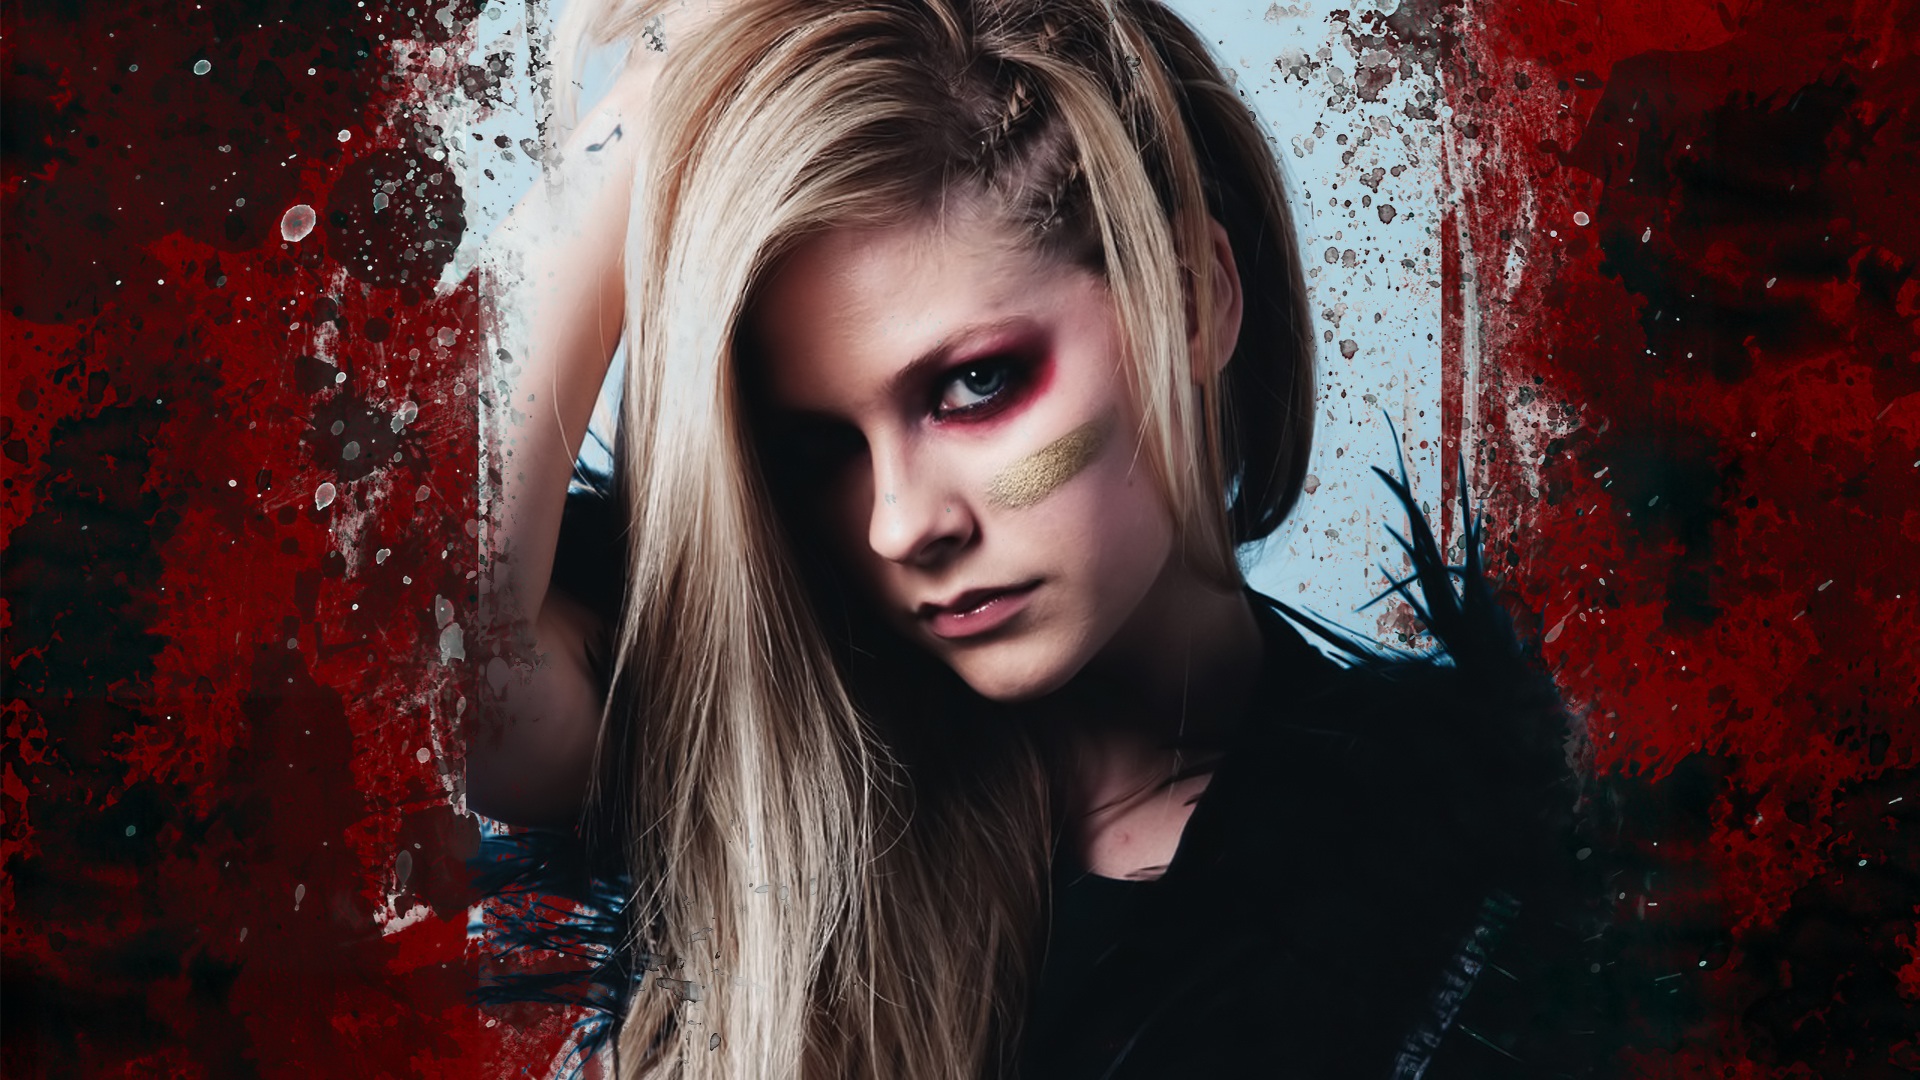 avril lavigne wallpaper screensaver - wallpapersafari